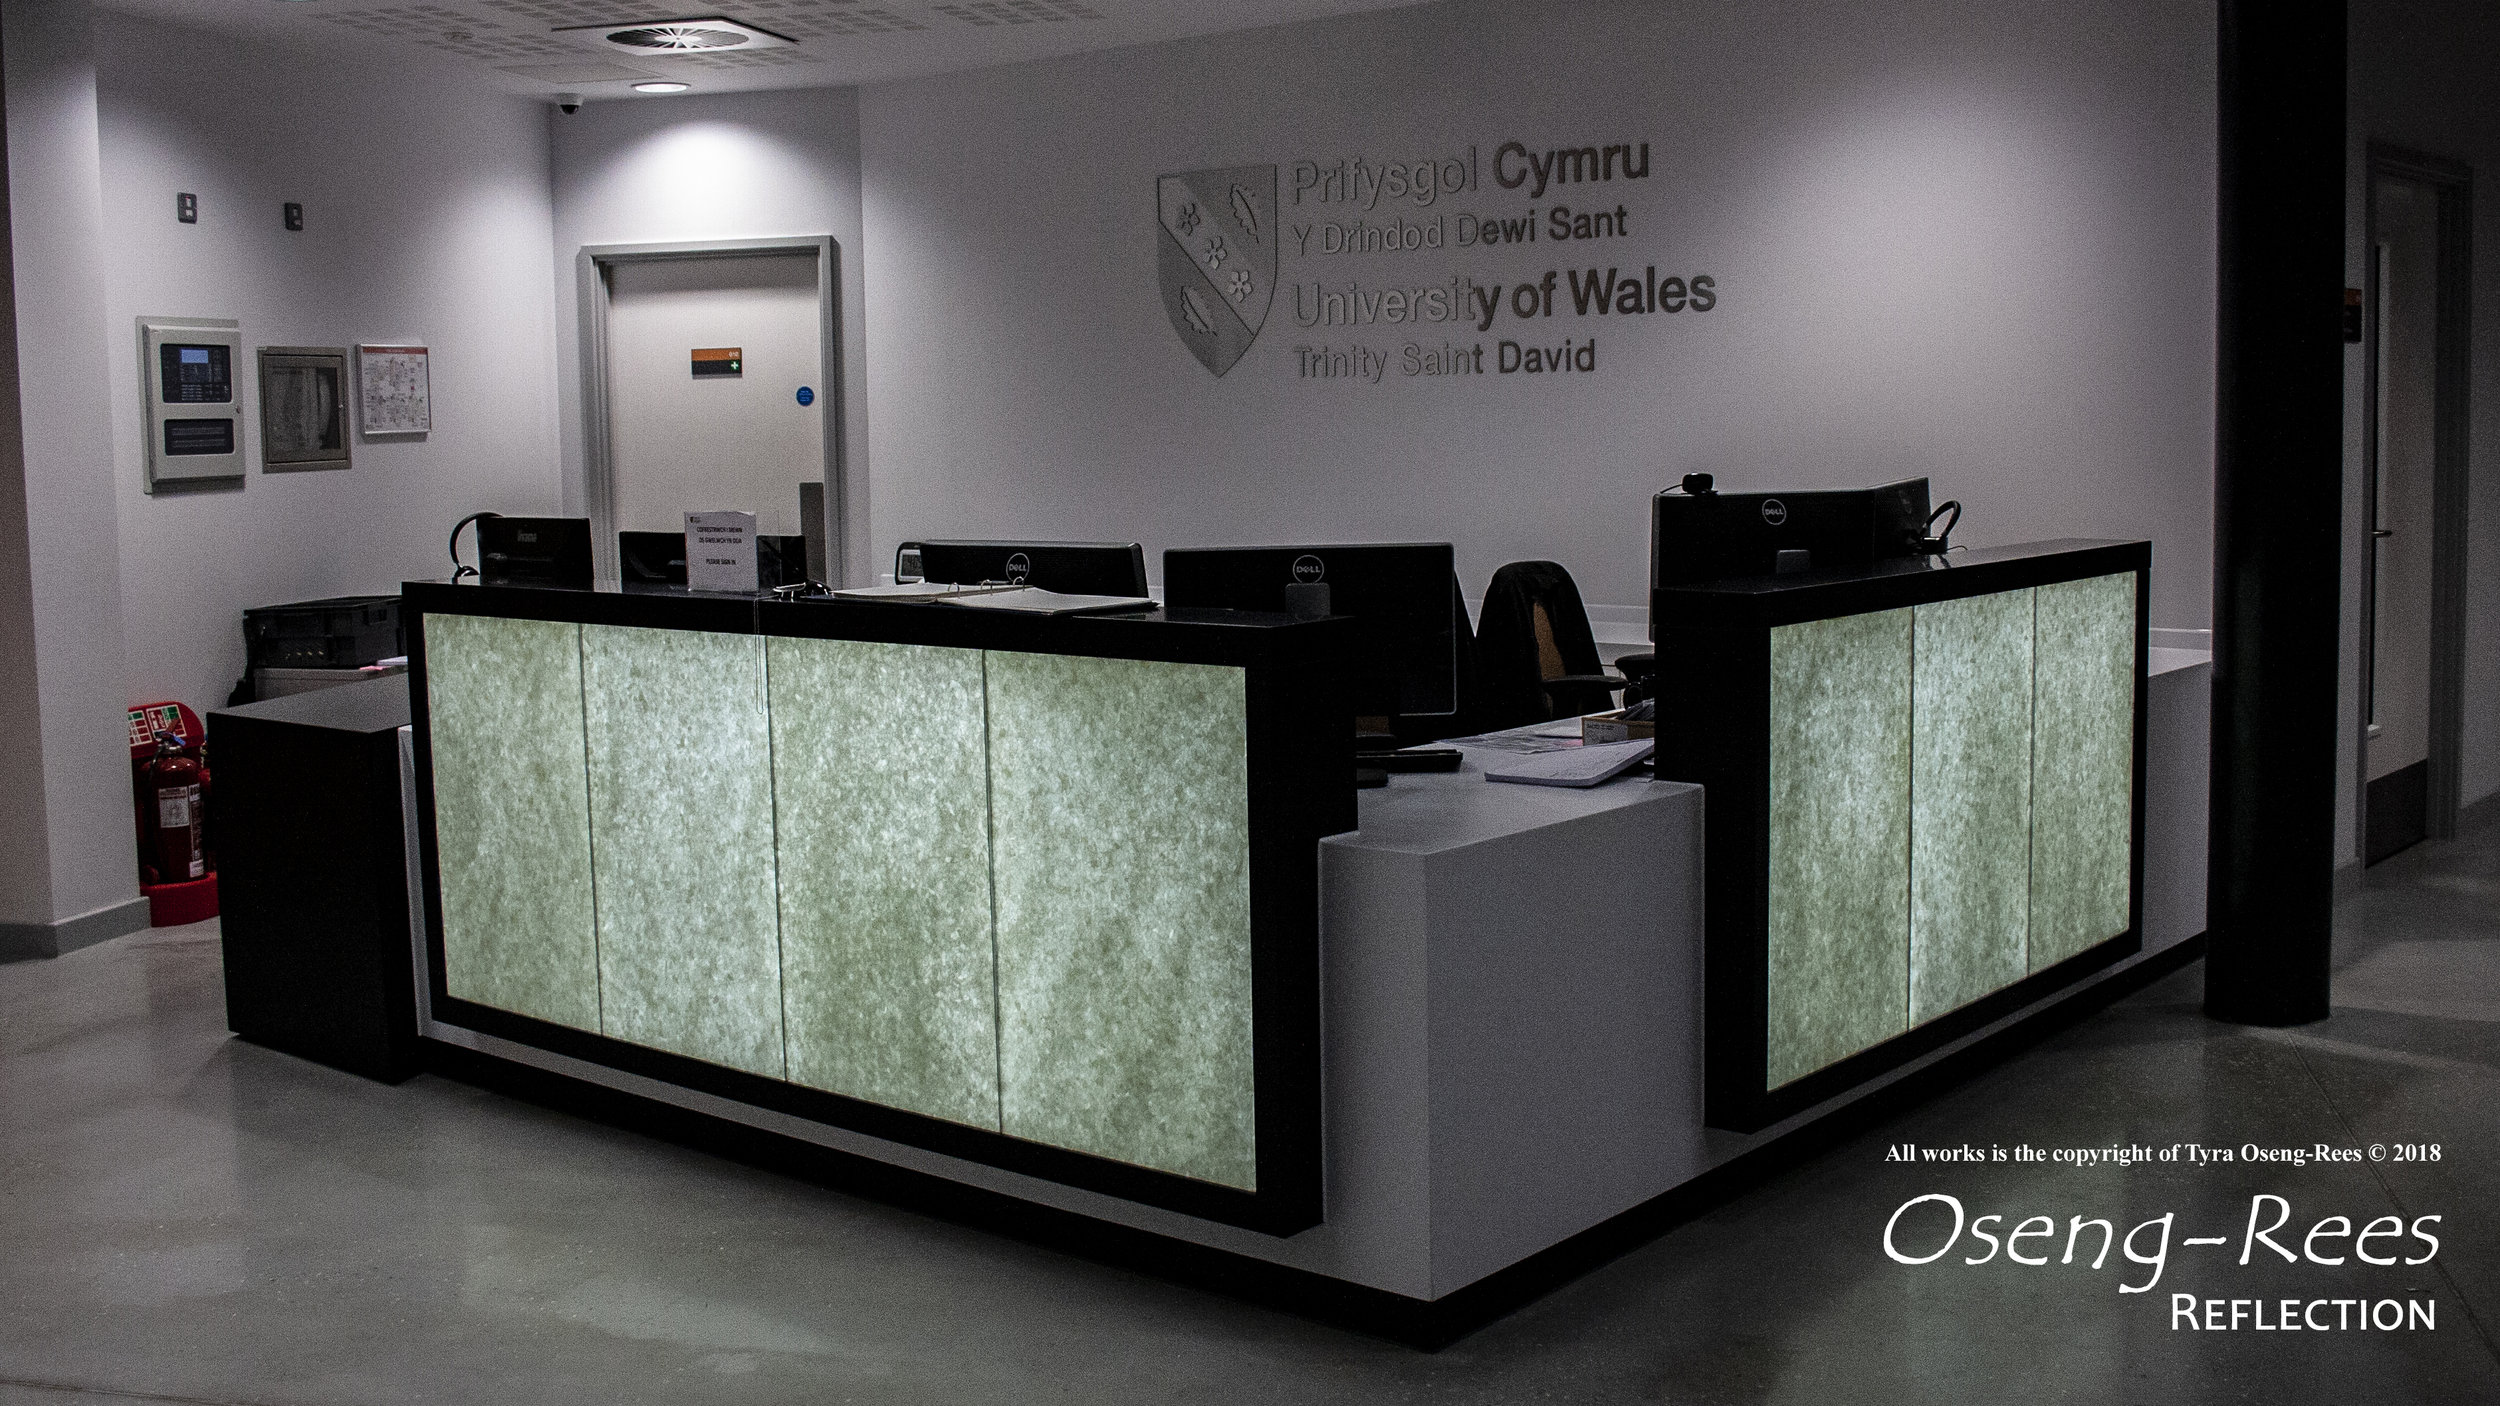 The reception desk is made from recycled glass designed in a bespoke maritime pattern positioned at the IQ Faculty building at University of Wales Trinity Saint David, Swansea SA1